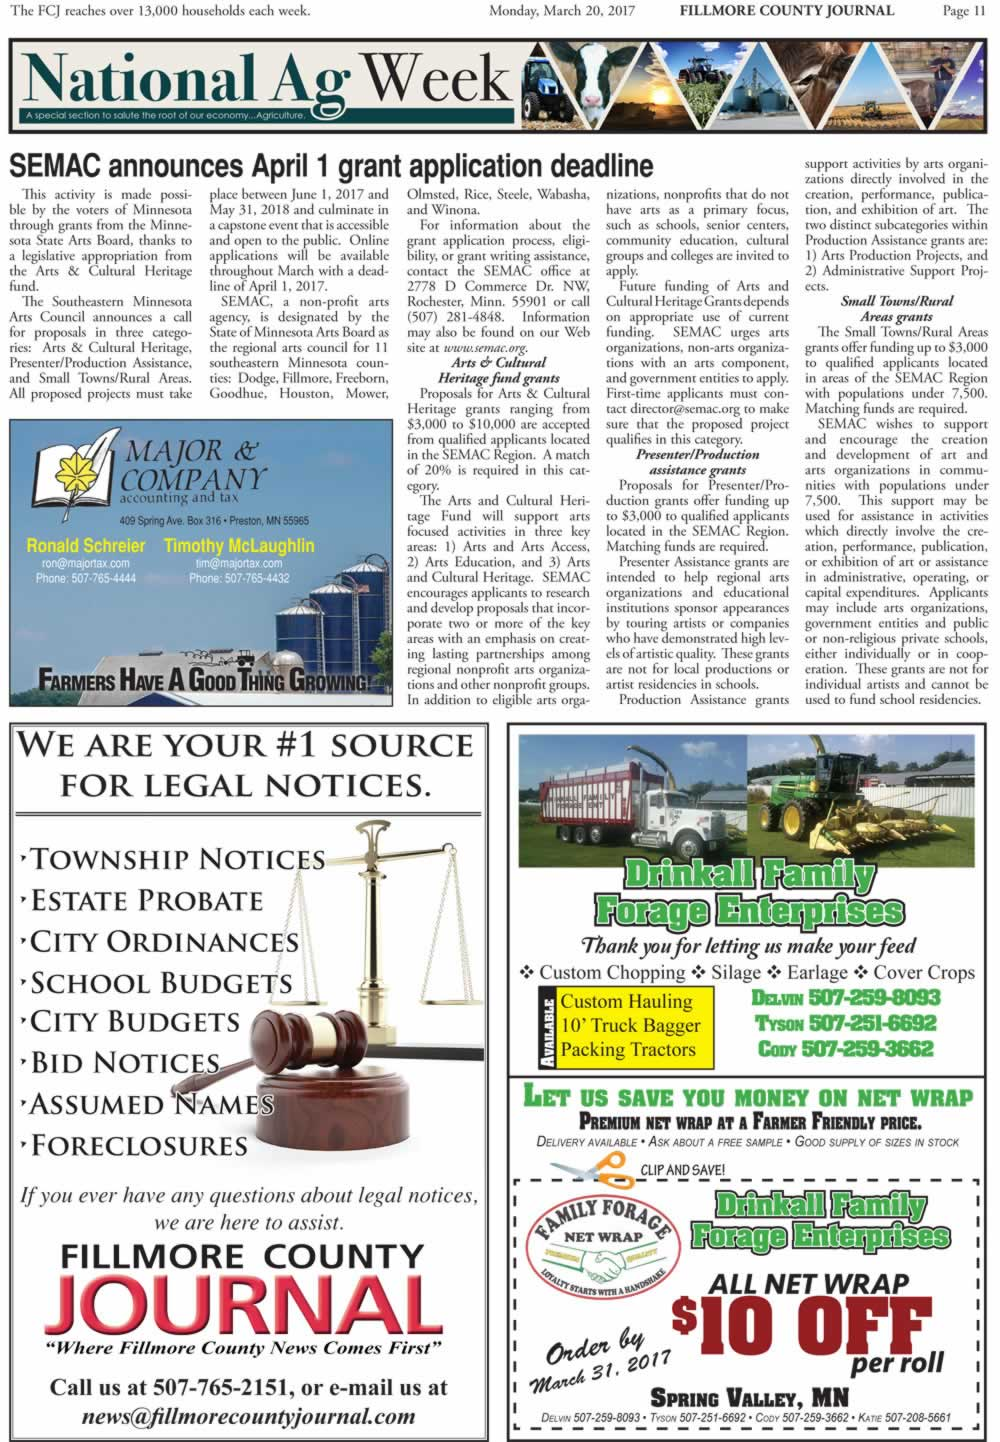 Fillmore County Journal - National Ag Week